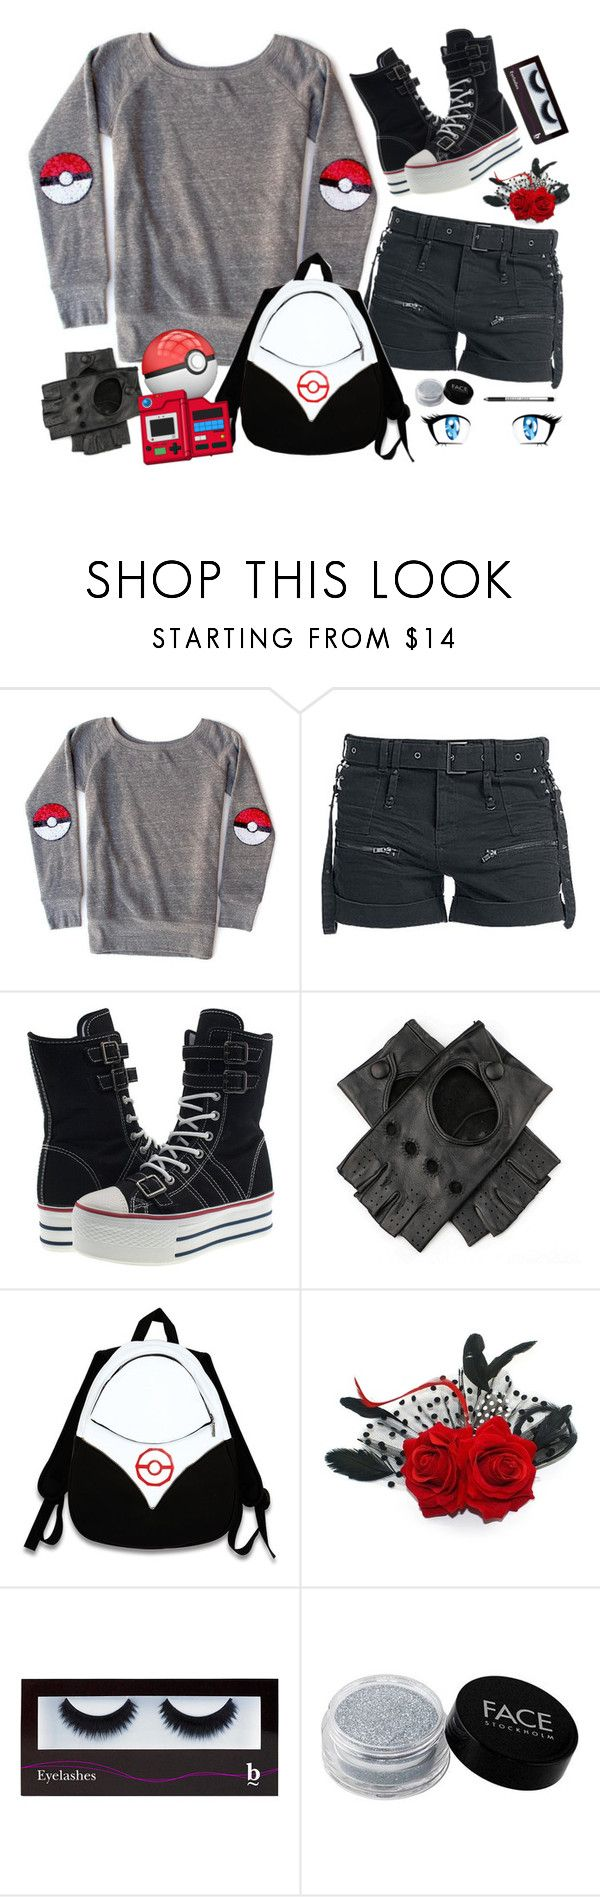 """""""Feminine Pokèmon Trainer"""" by xx-prince-gumball-xx ❤ liked on Polyvore featuring Black, Valor, BBrowBar, FACE Stockholm and CuteCosplays"""